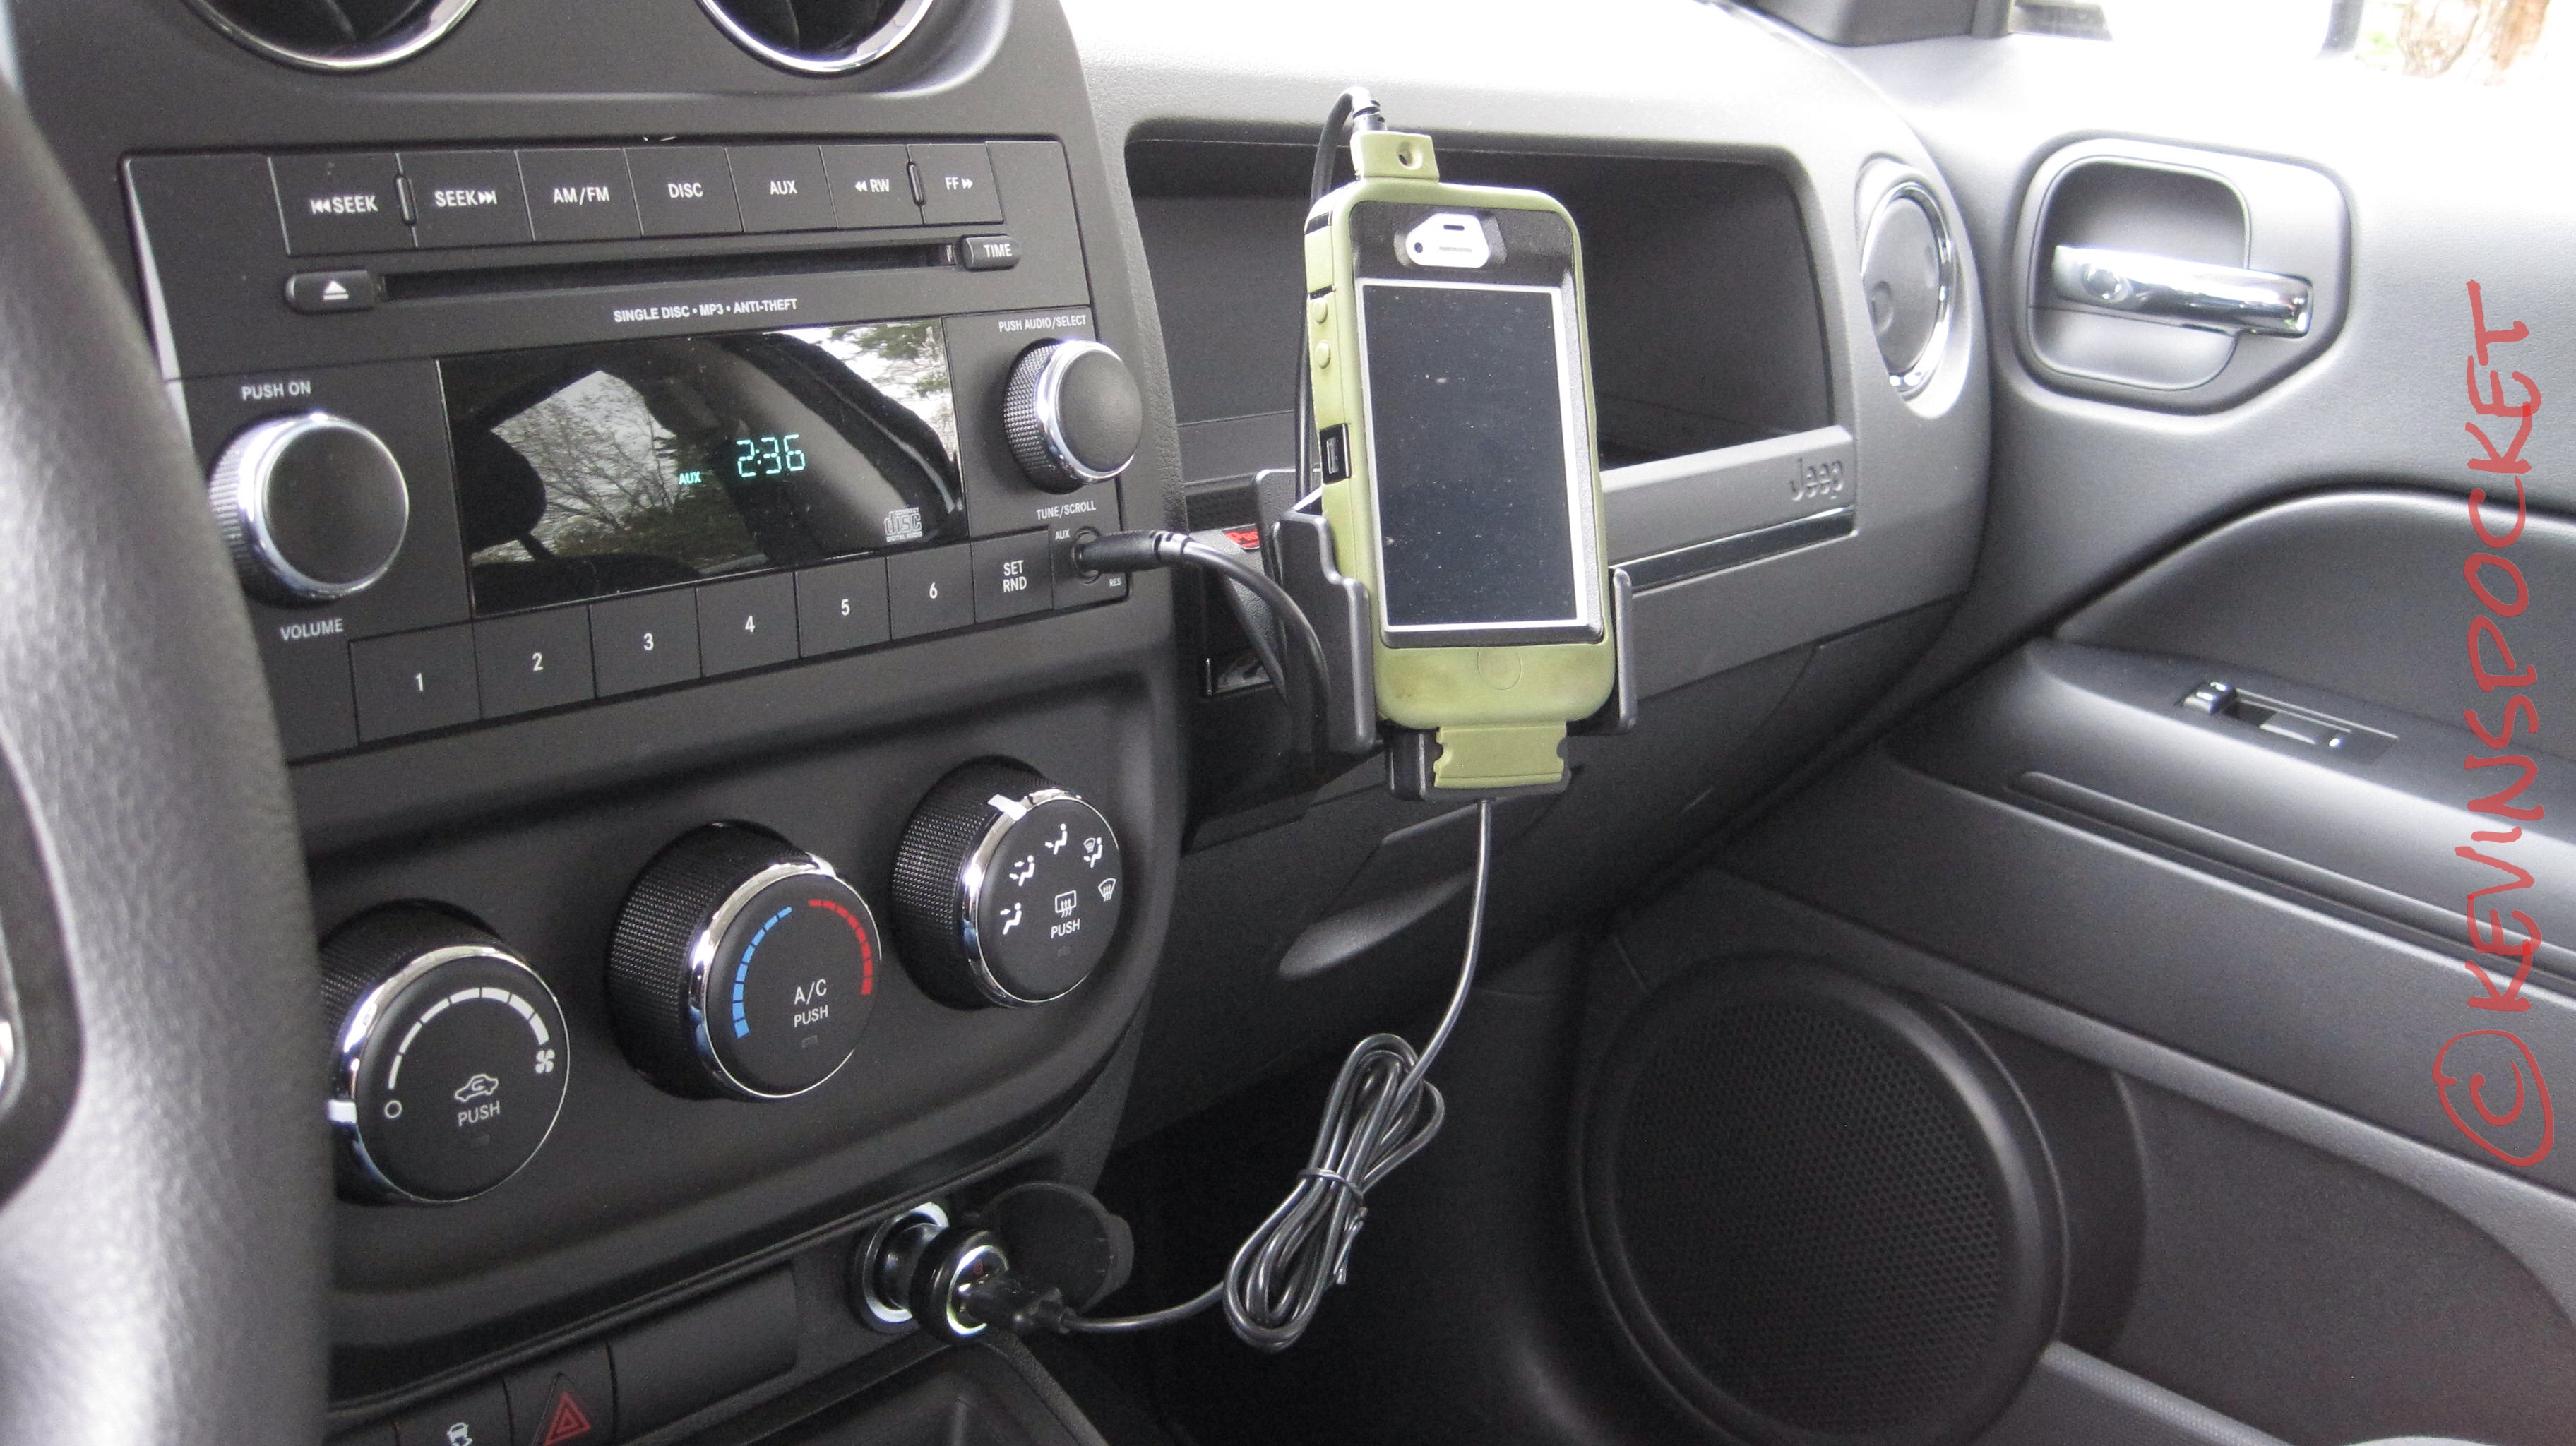 Proclip Usa Iphone Mount For Jeep Patriot Kevinspocket